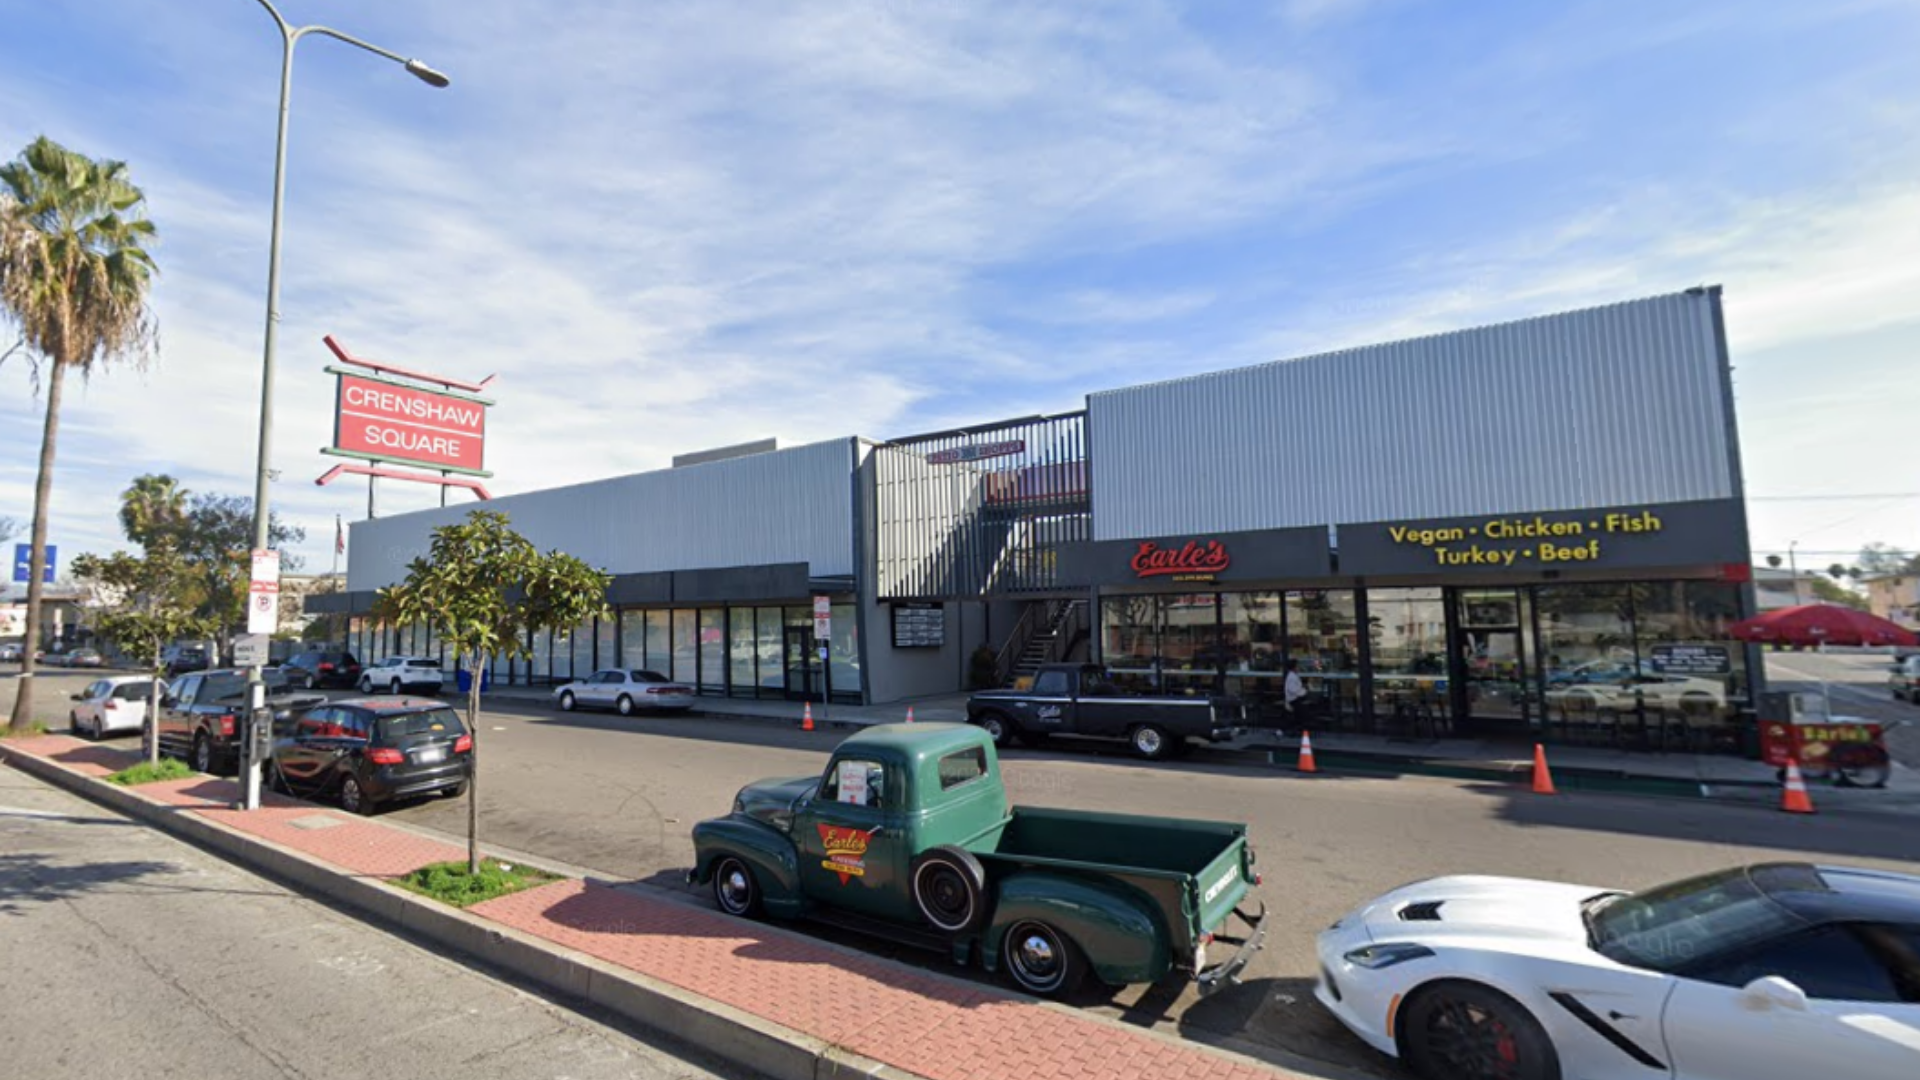 A Google Maps images shows Crenshaw Square.